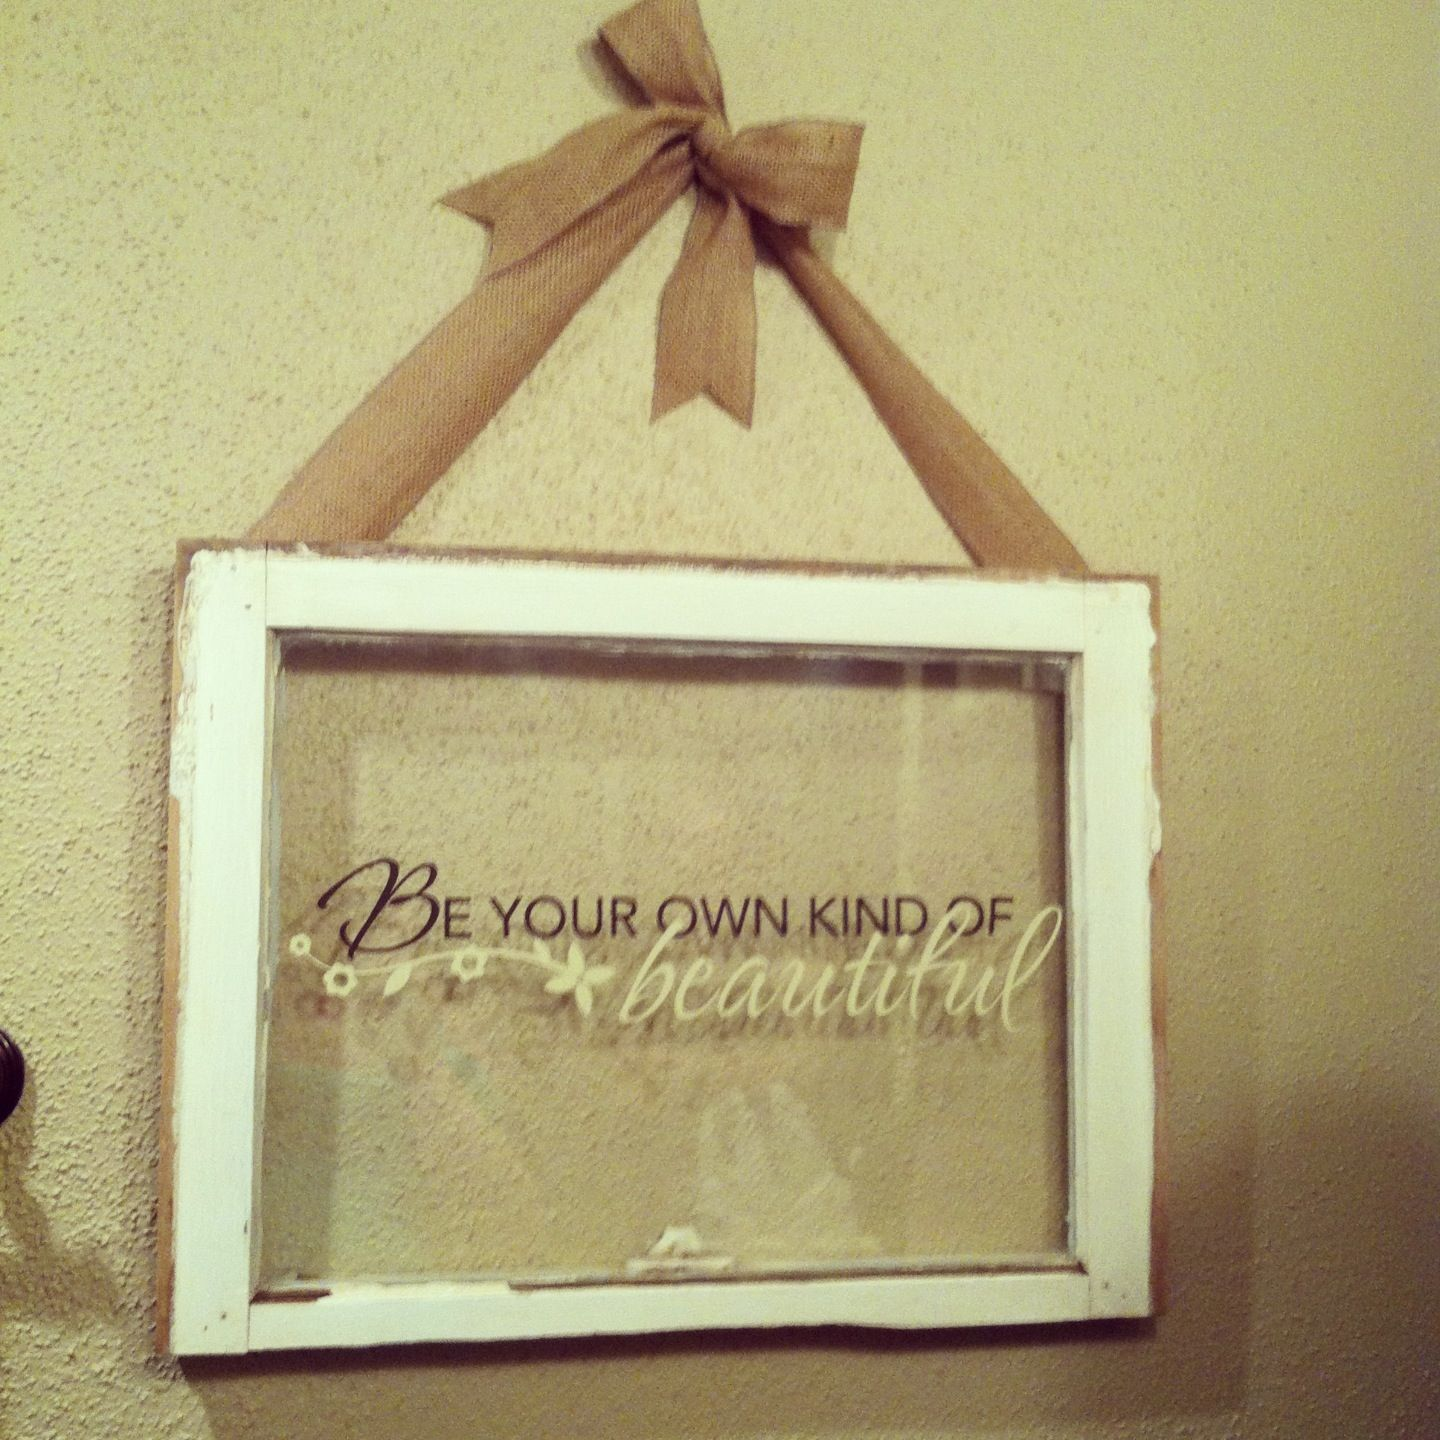 Old window decoration artistic ideas pinterest for Old window craft projects